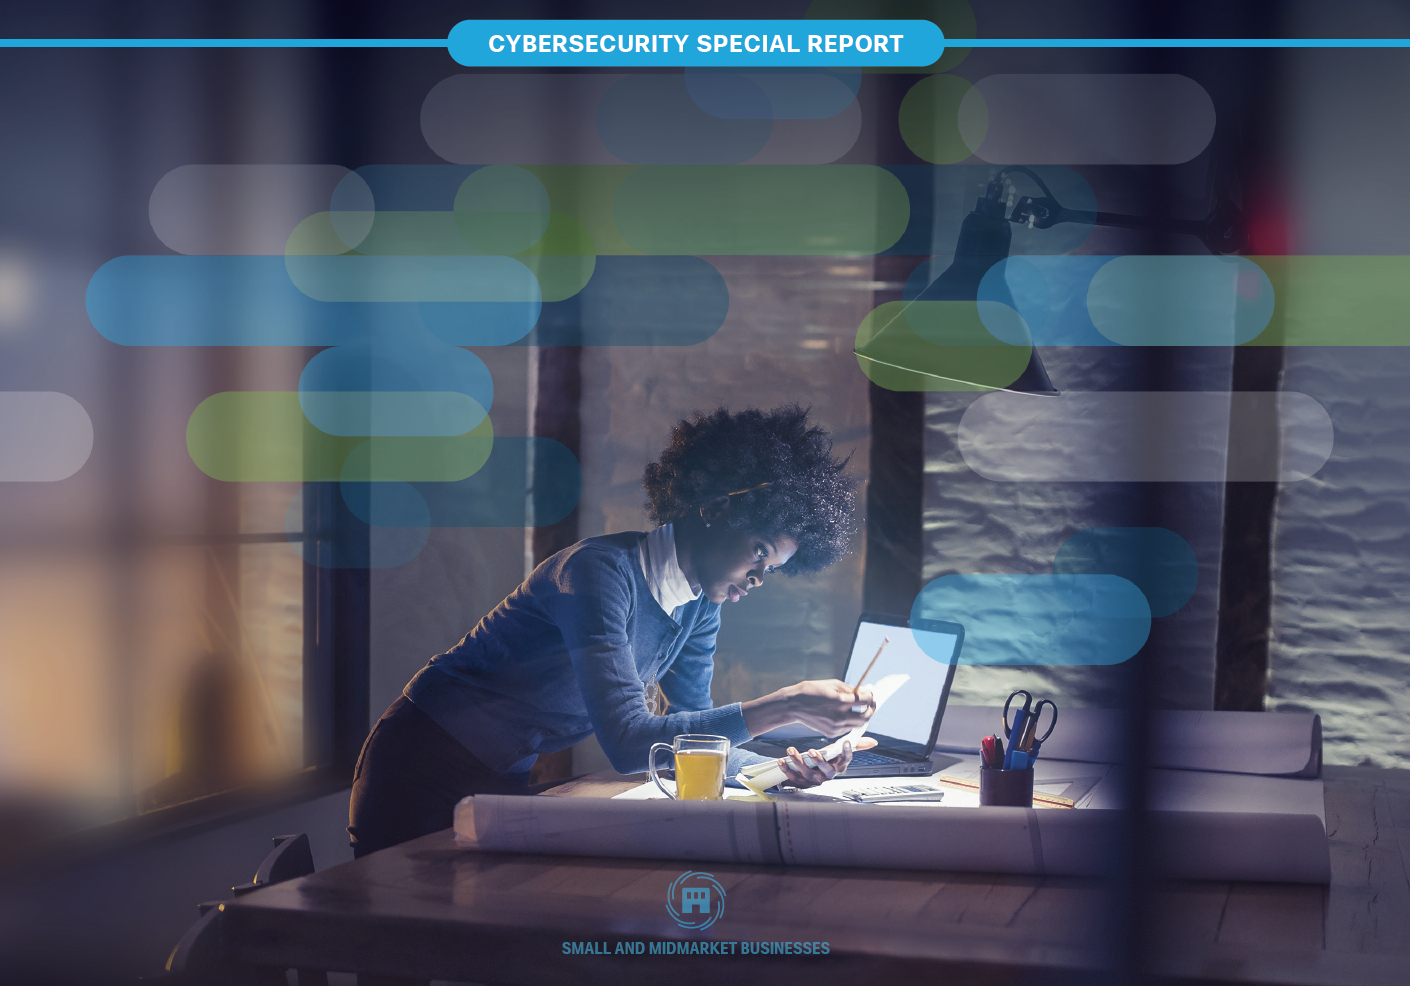 Special Edition Cisco CyberSecurity Report for SMBs